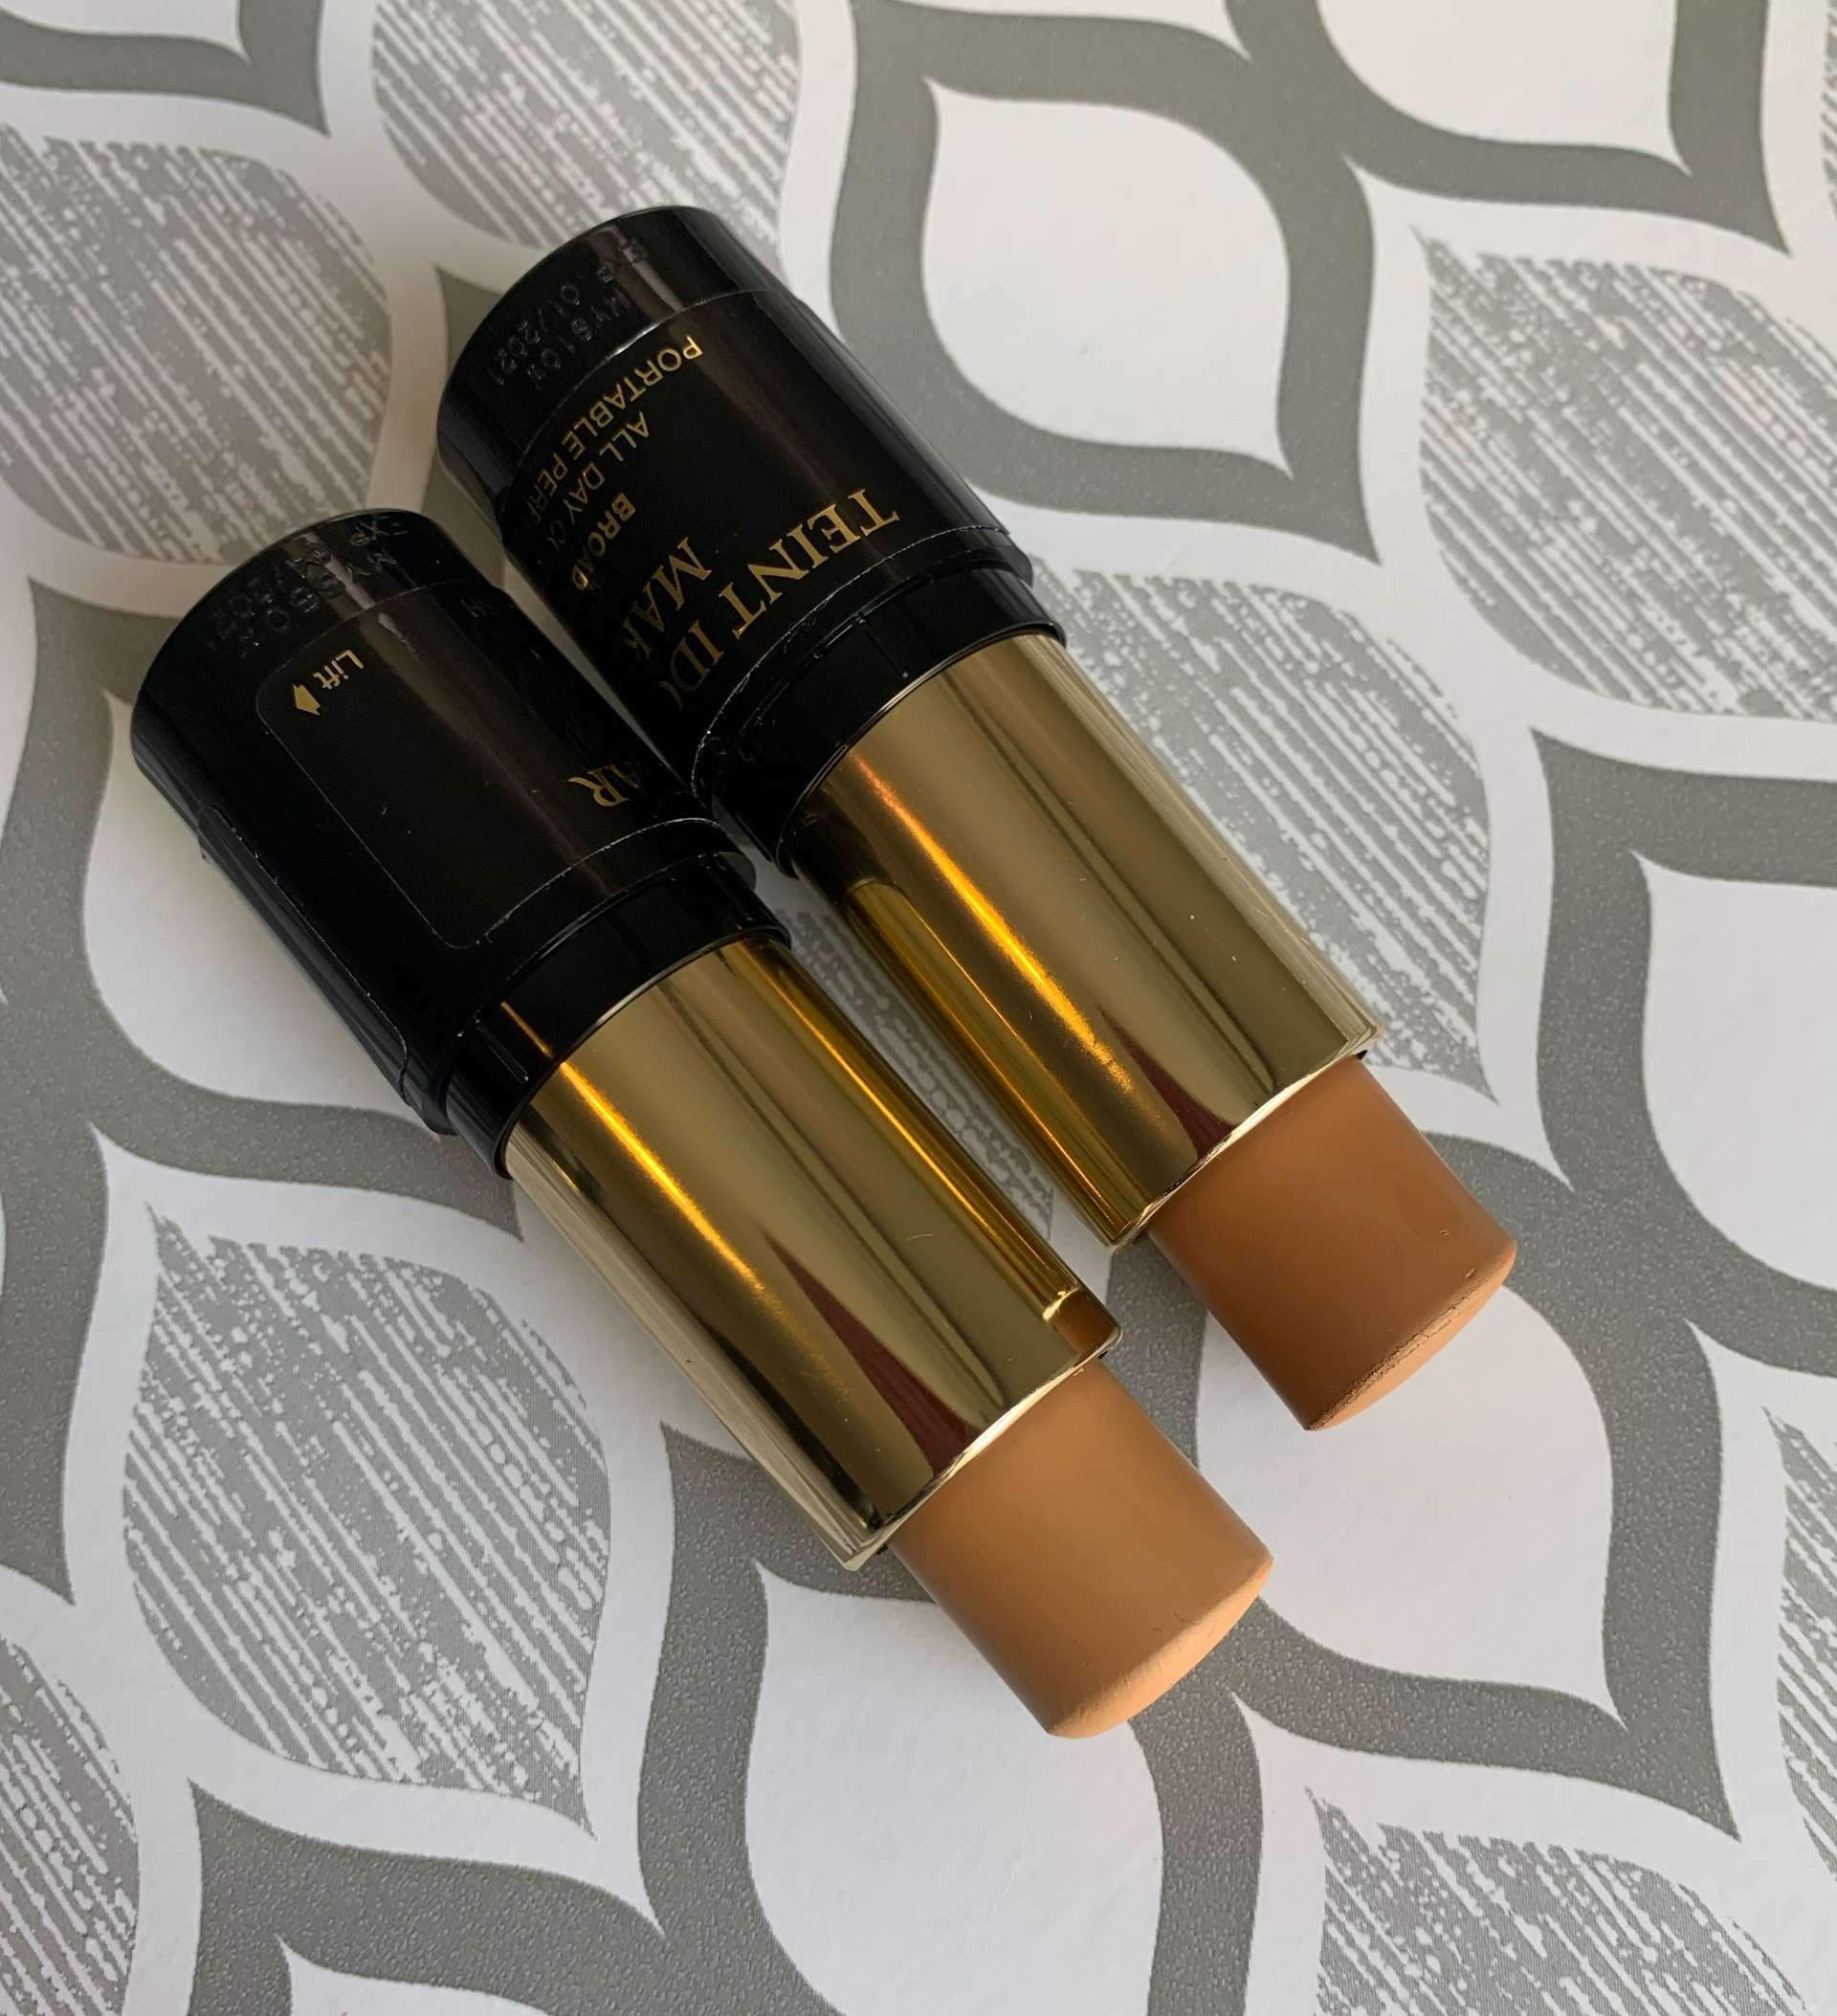 Lancome Teint Idole Ultra Stick Foundation 415 Bisque W and 435 Bisque W